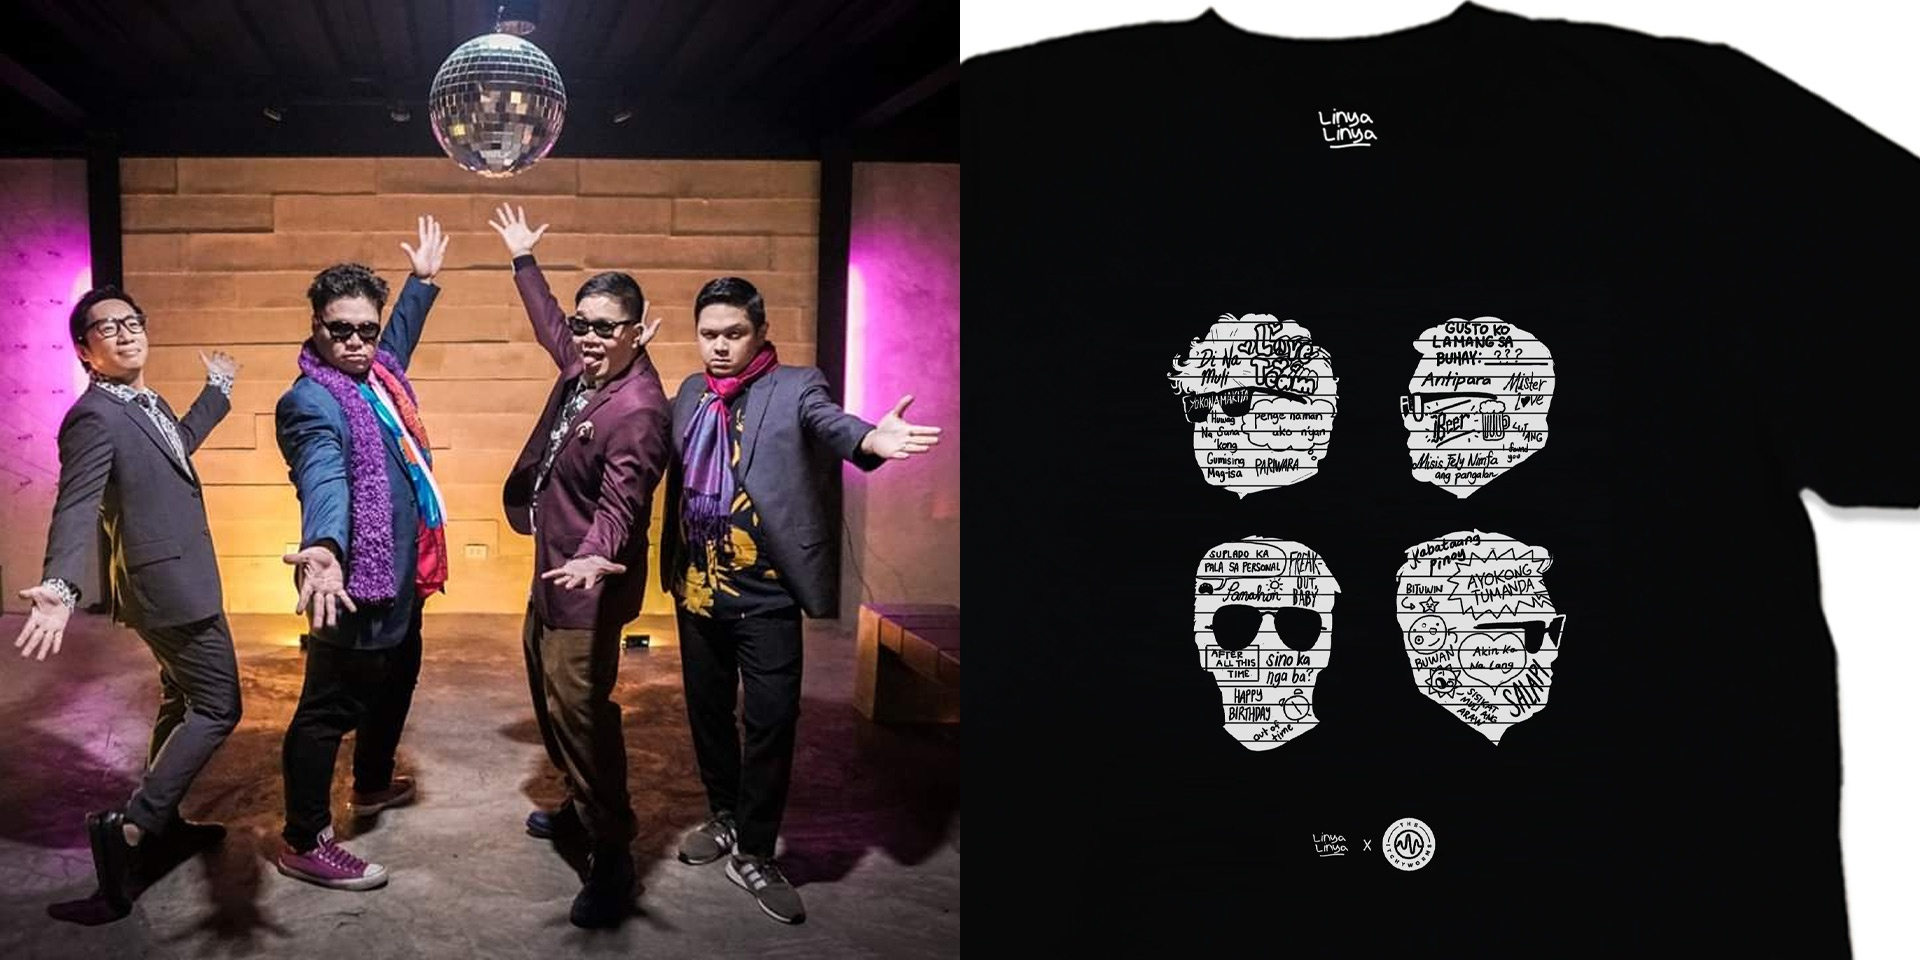 The Itchyworms release 20th anniversary shirt with Linya-Linya